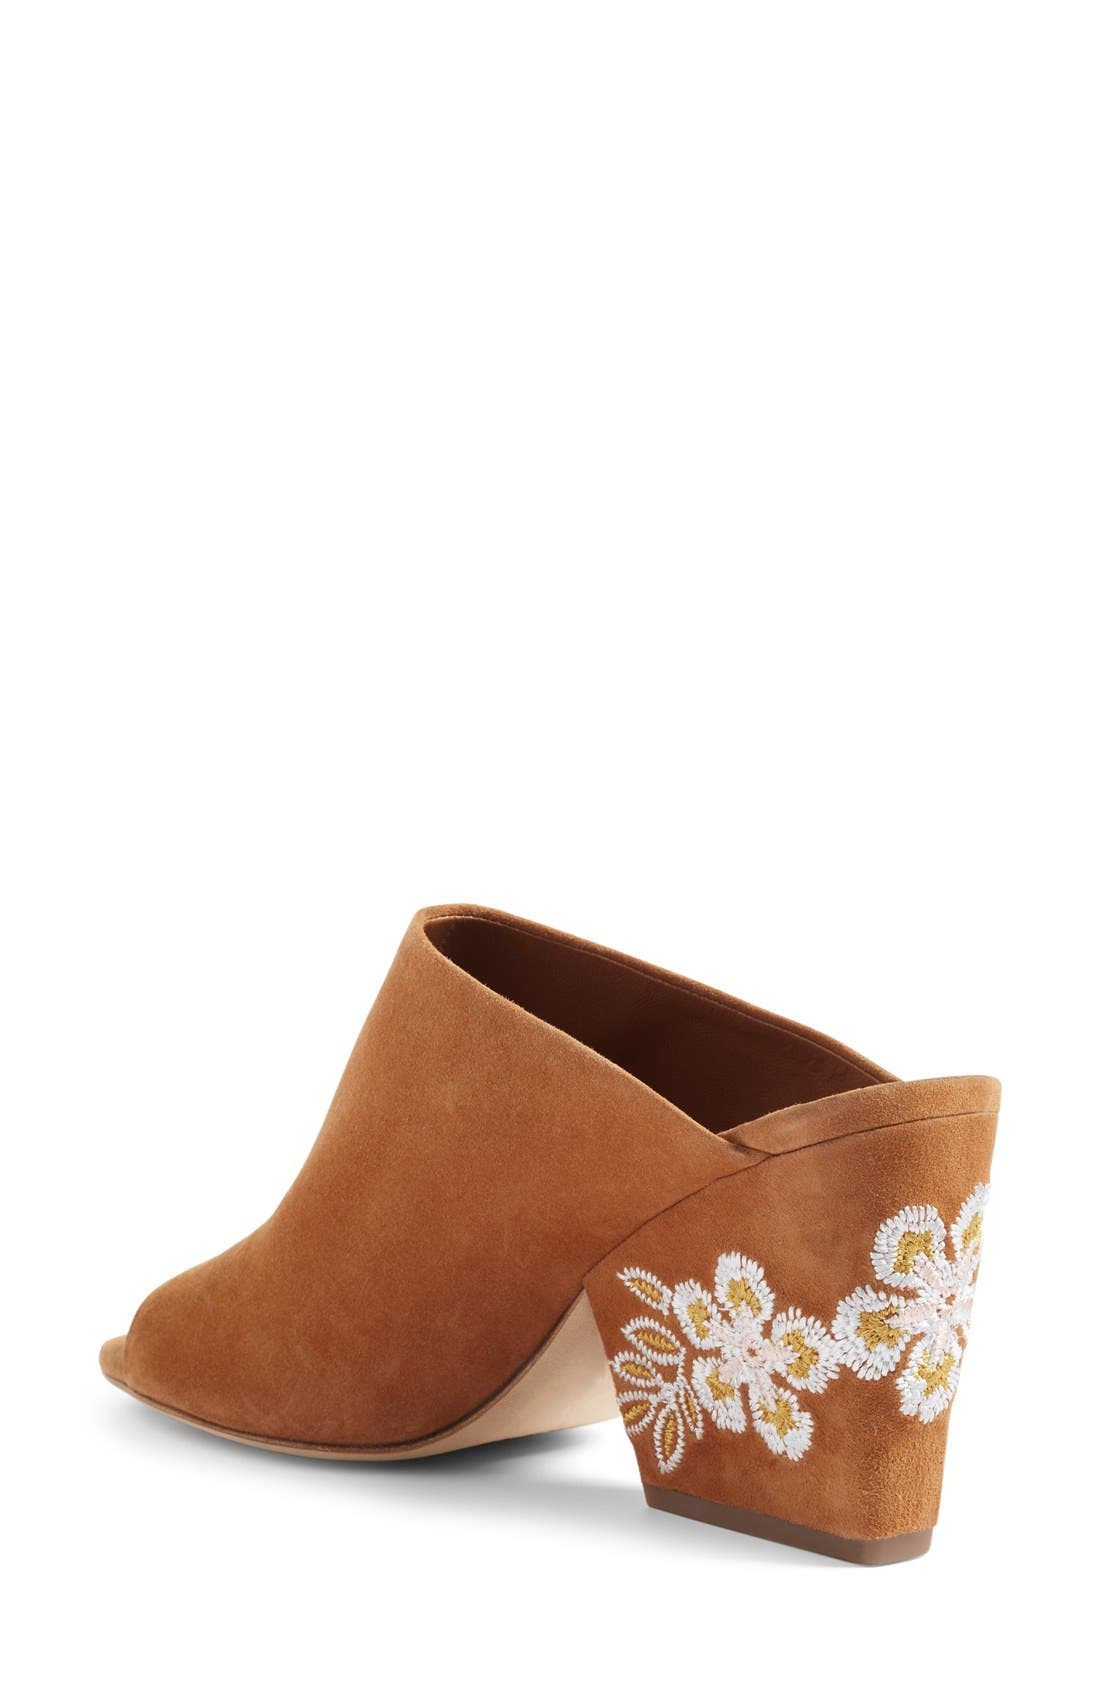 Alternate Image 2  - Tory Burch Embroidered Floral Mule (Women)